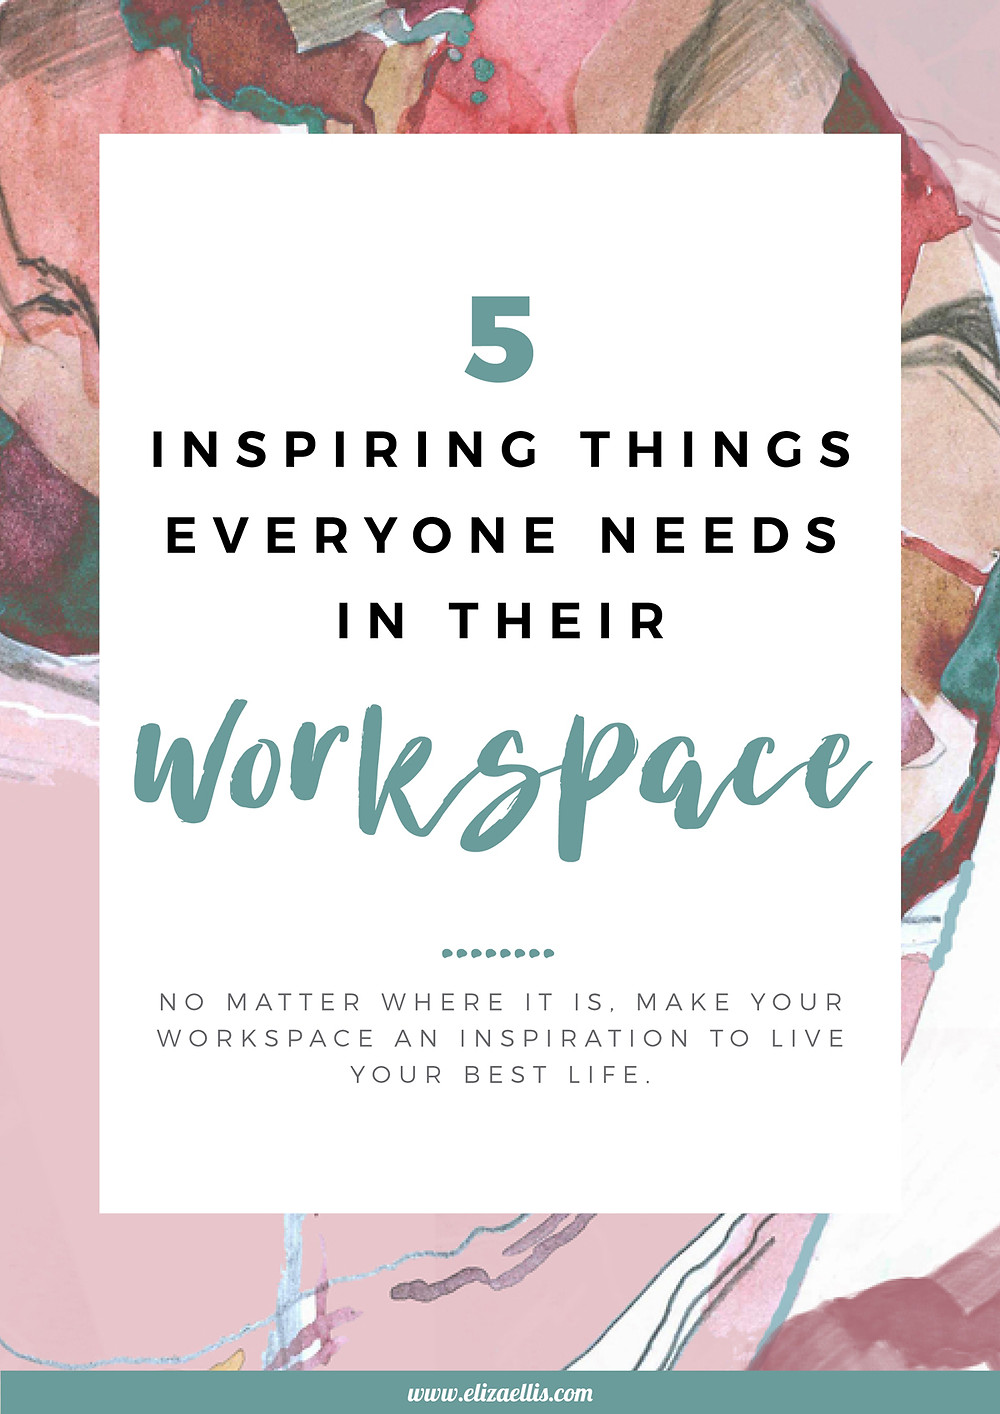 5 Inspiring Things Everyone Needs In Their Workspace // Eliza Ellis // find your why, inspirational quotes, inspiring stories, motivating words, inspirational people, happiness, how to be happy, goal setting, goal achievement, self care, self care ideas, self care for women, wellness inspiration, wellness lifestyle, wellness workplace, employee engagement, workplace activities, destress, reduce workplace stress, workplace wellness ideas, self care at work, workplace wellness program, desk ideas, desk inspiration, desk organization